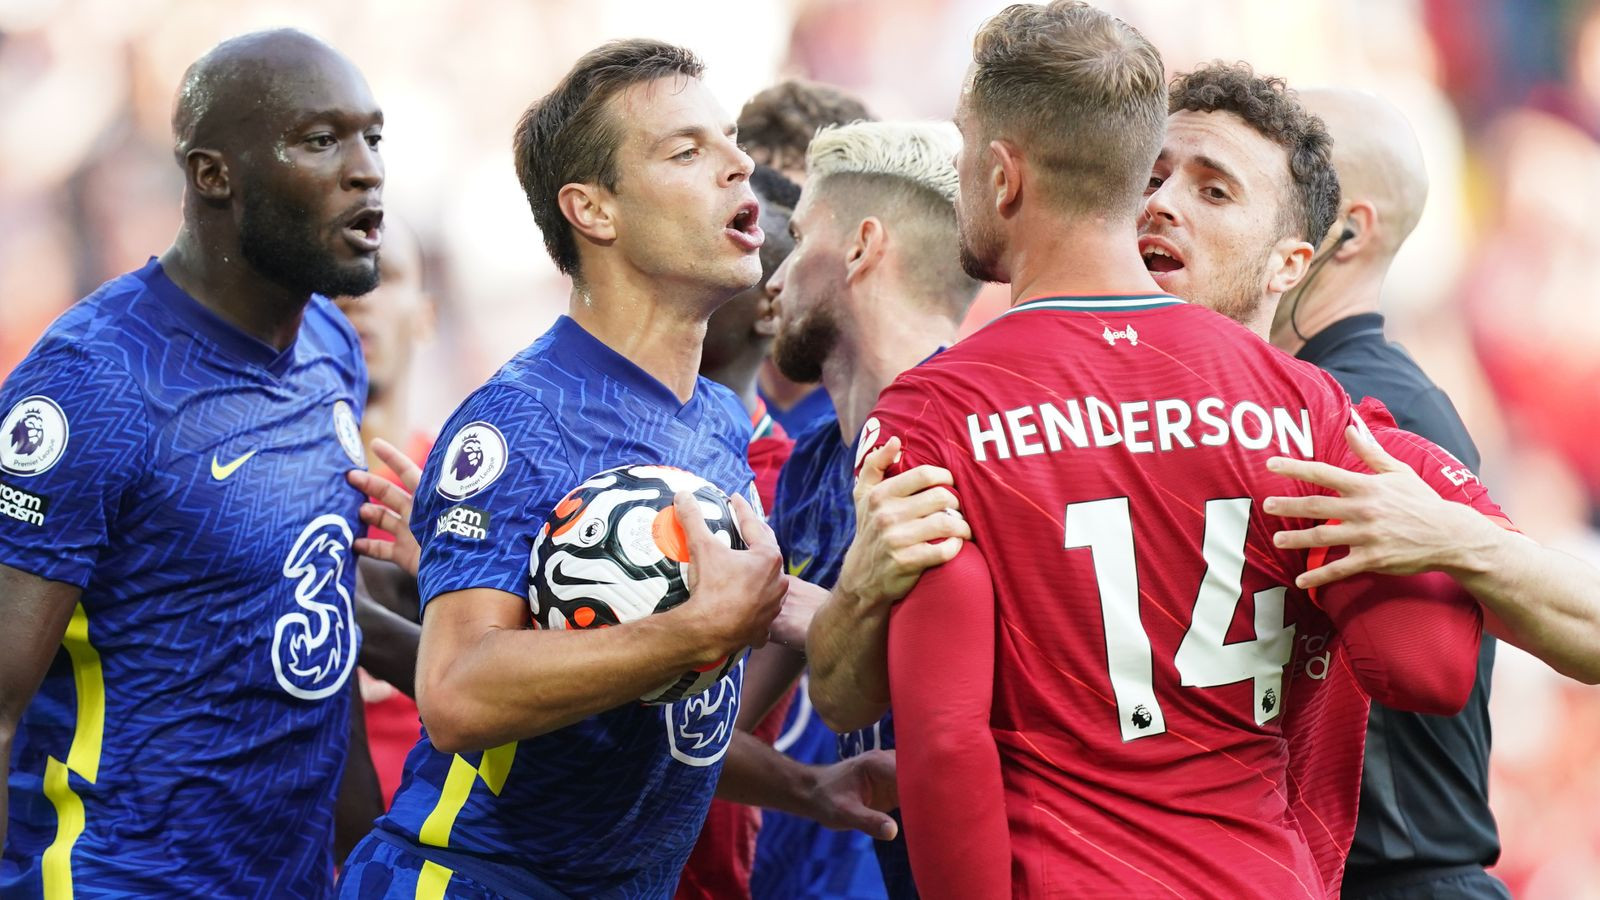 Chelsea fined £25,000 by FA for failing to control players in draw at Liverpool